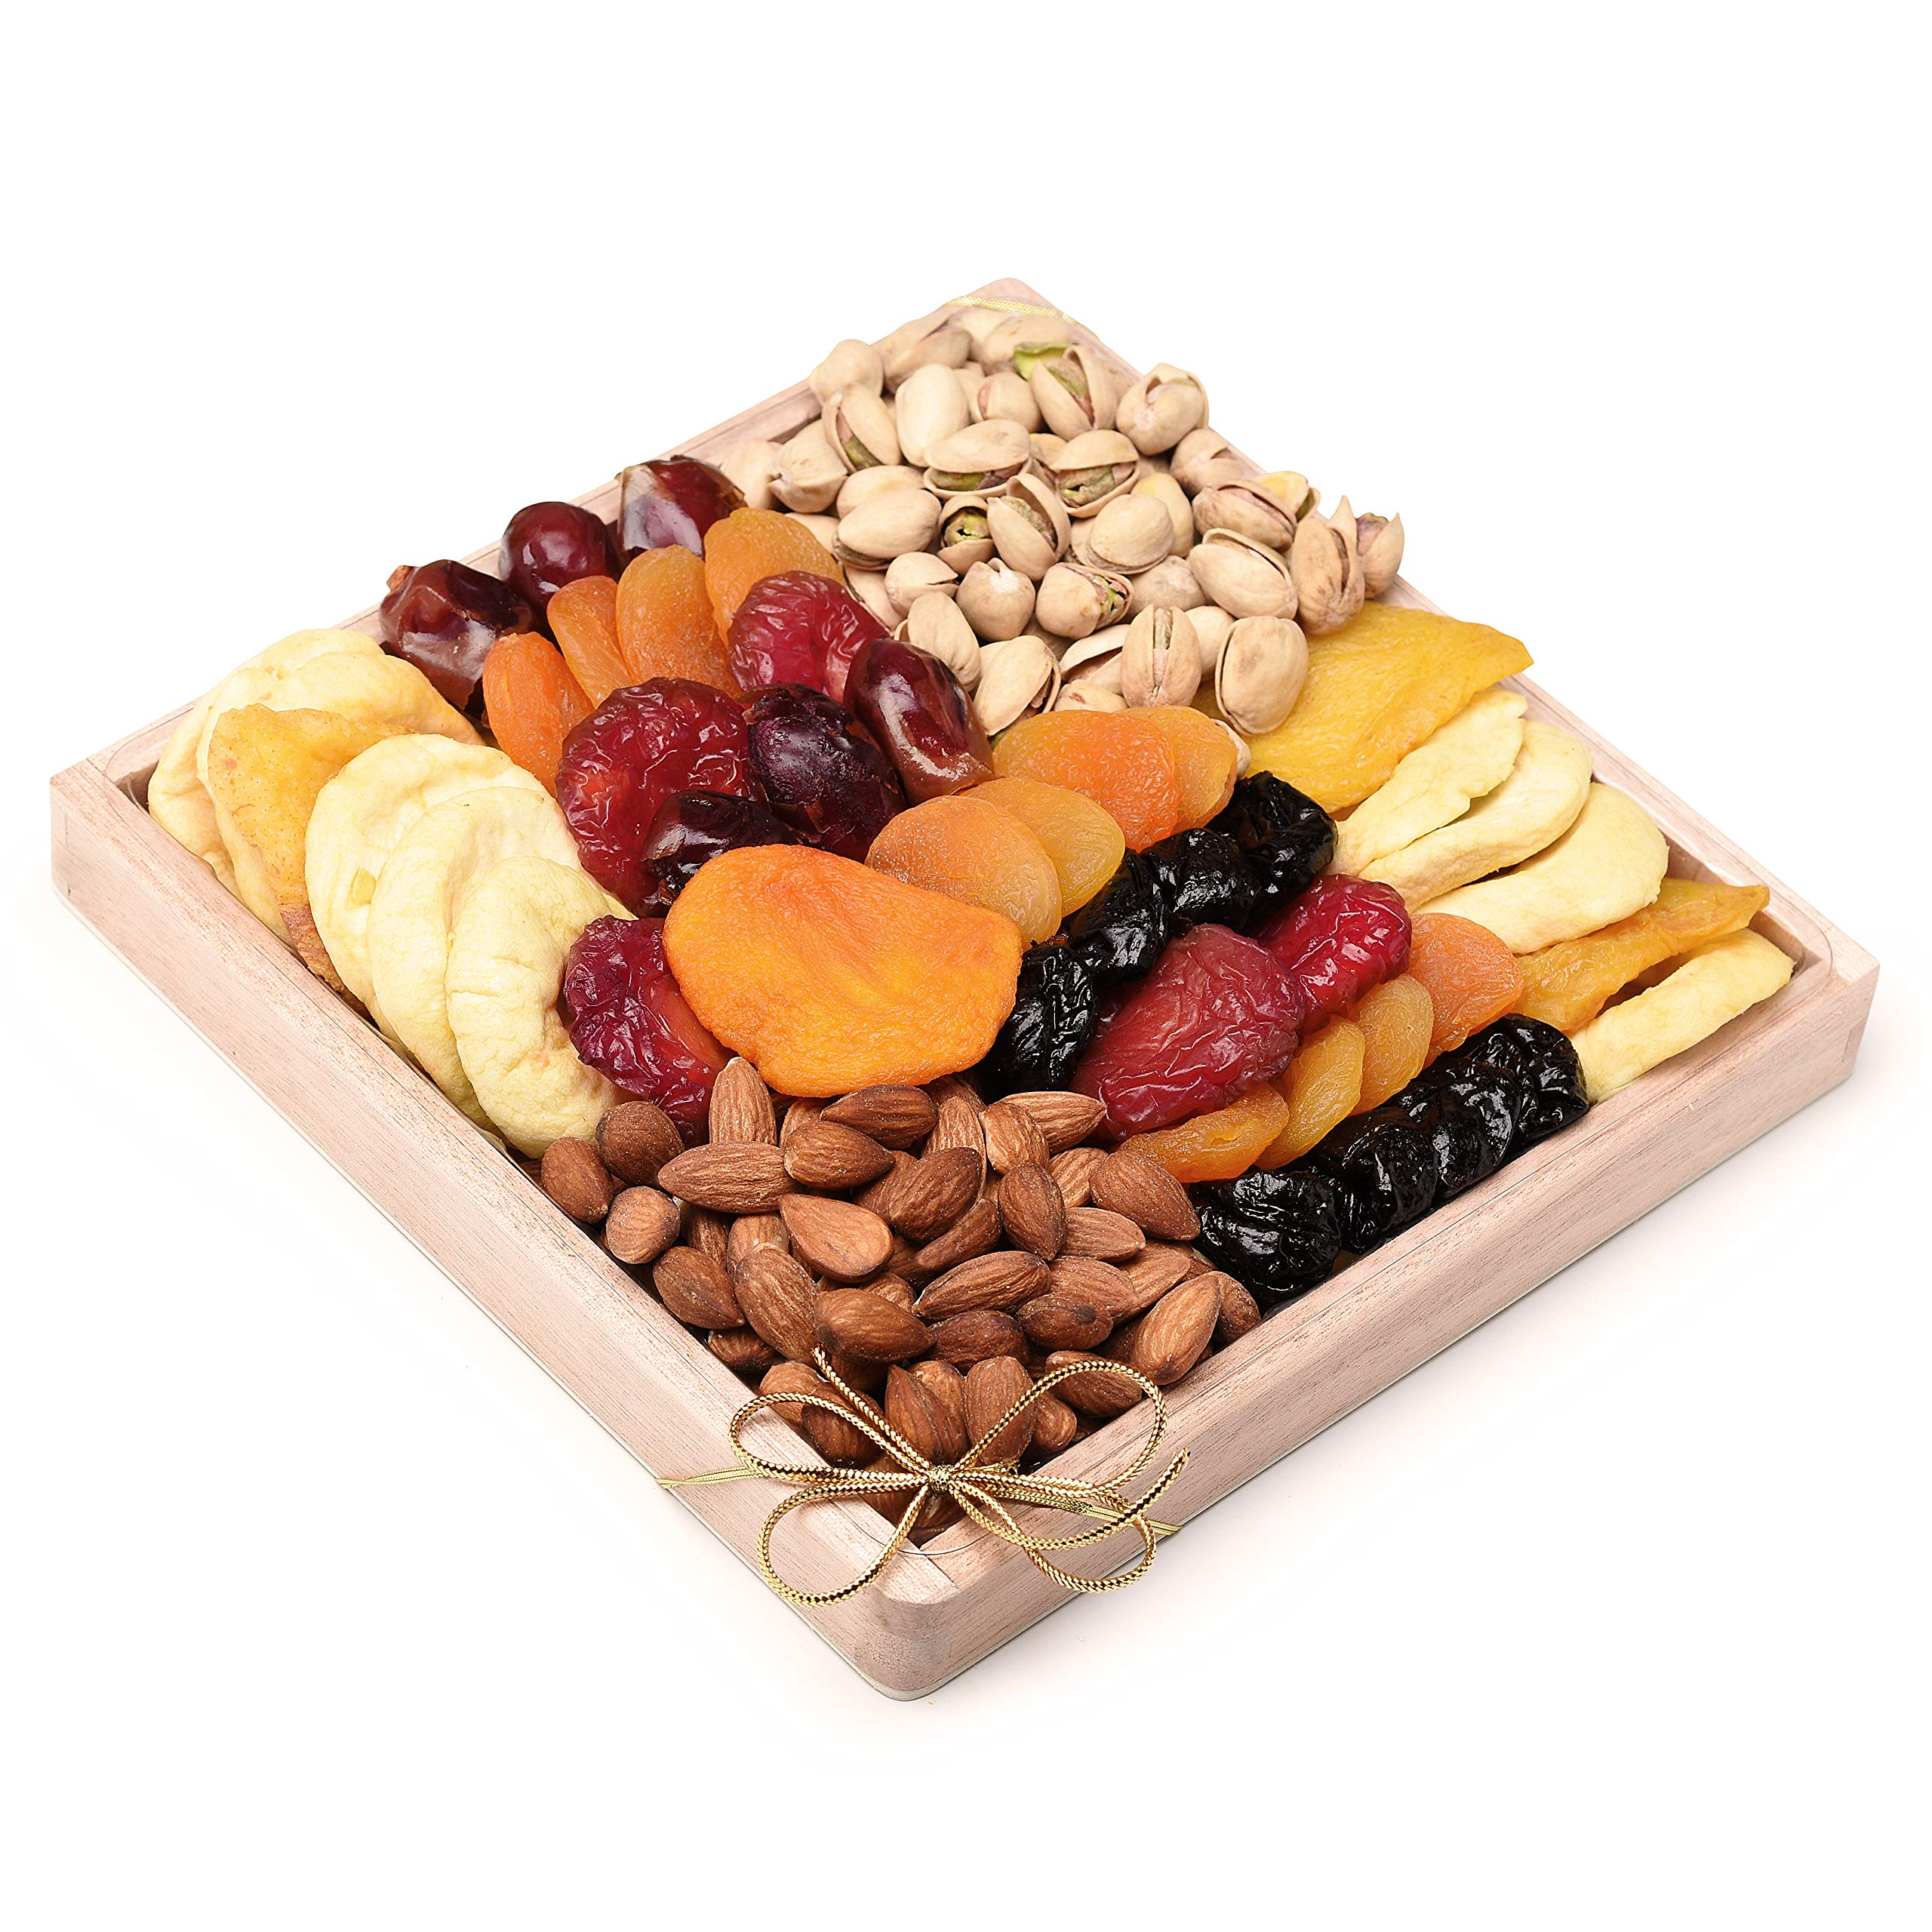 Milliard Dried Fruit & Nut Gift Platter Arrangement on Pine Wood Tray for year-round and Holiday - 24 Ounce Assortment